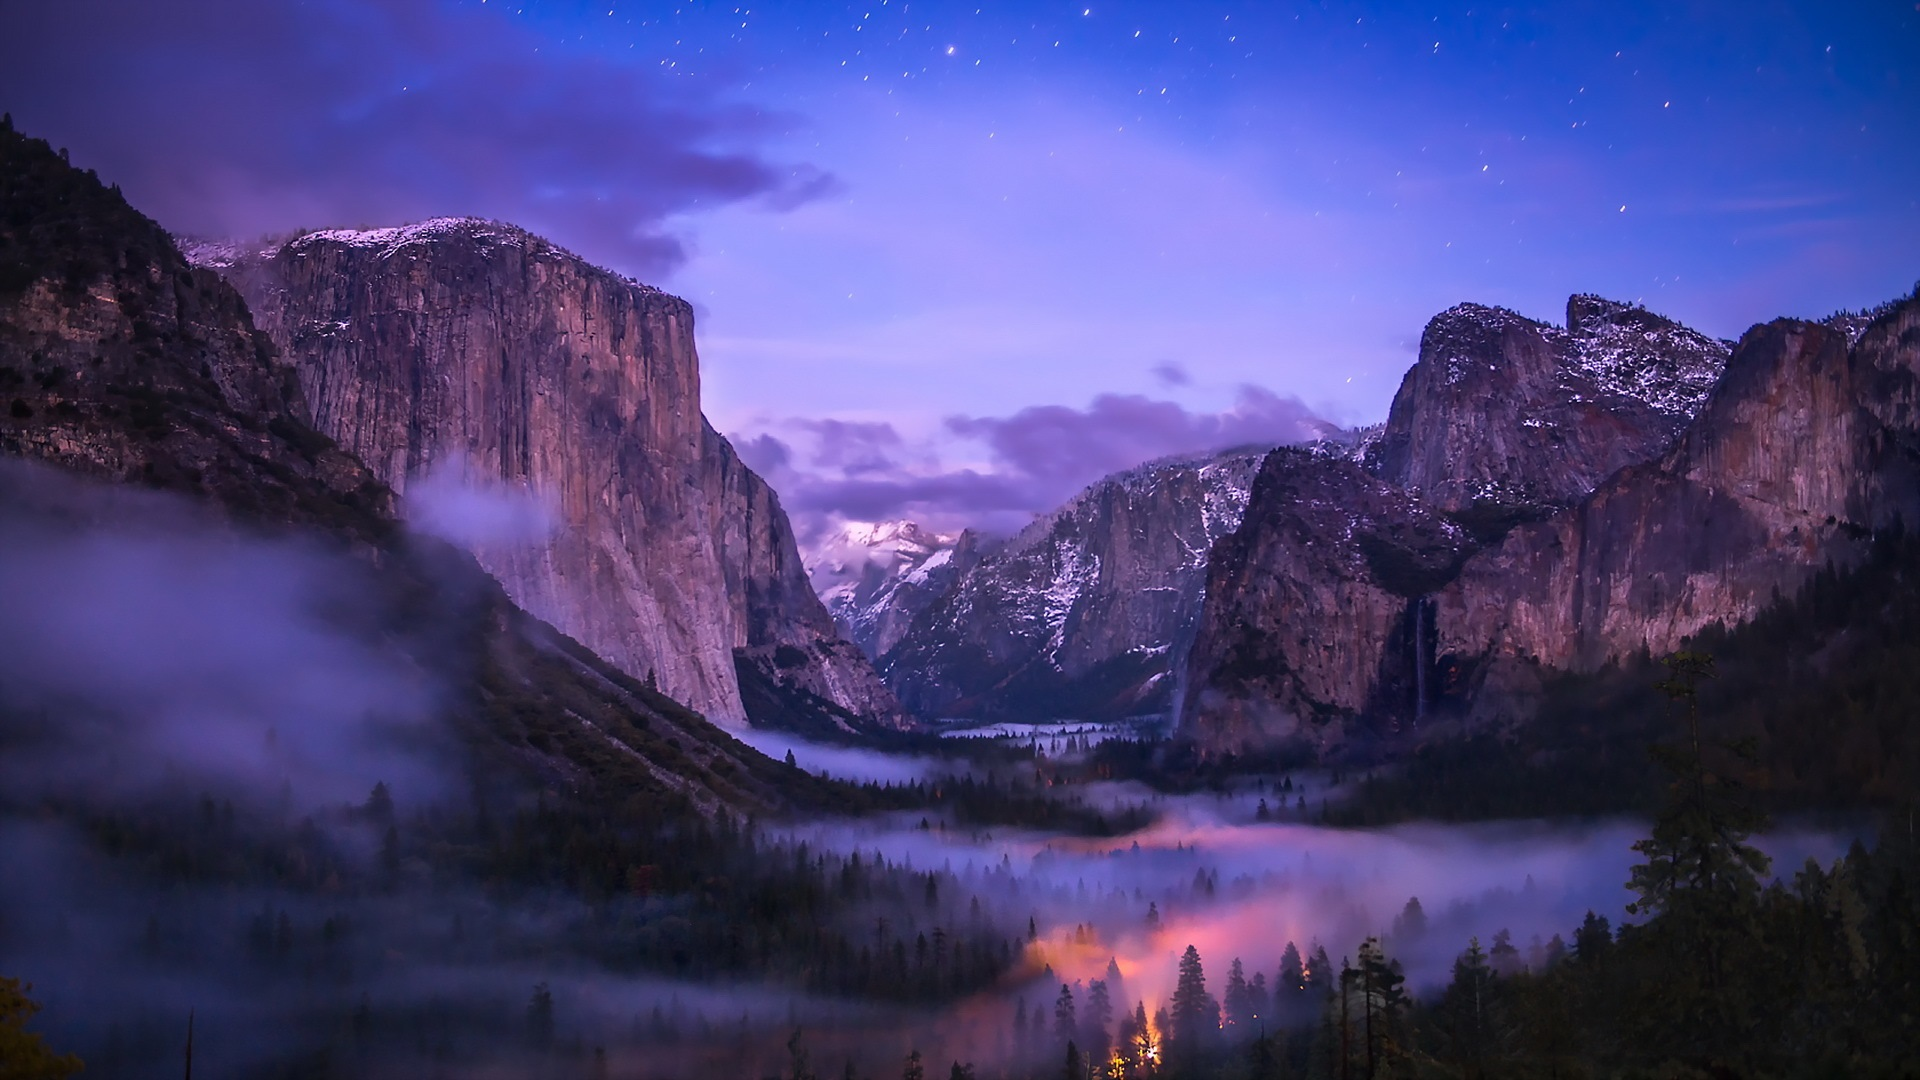 High Resolution Wallpaper: Yosemite Wallpaper High Resolution